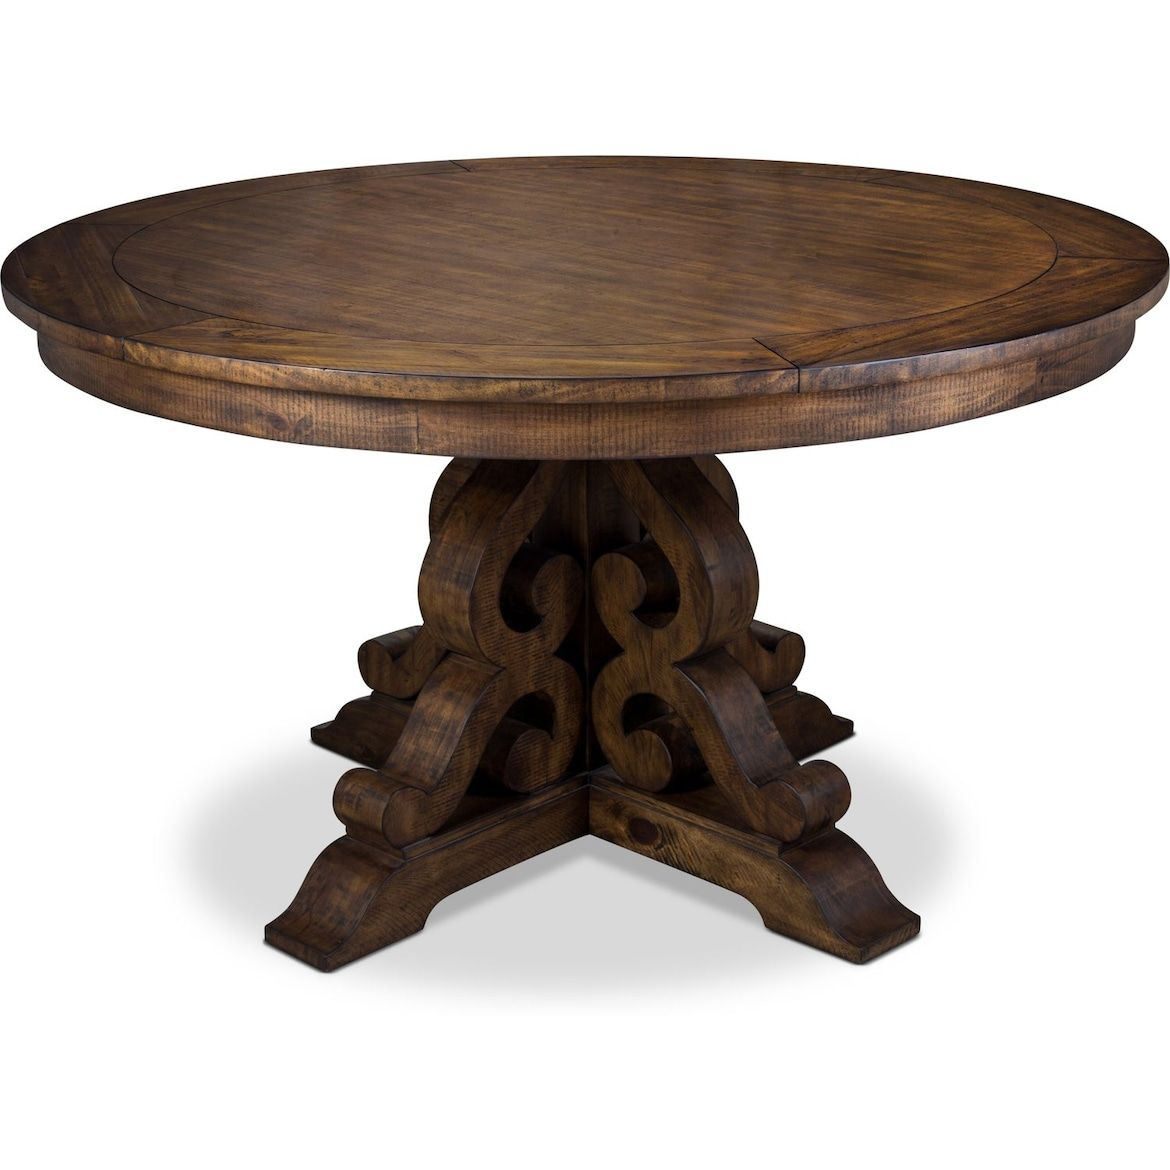 Charthouse Round Dining Table Nutmeg In 2020 Dining Table